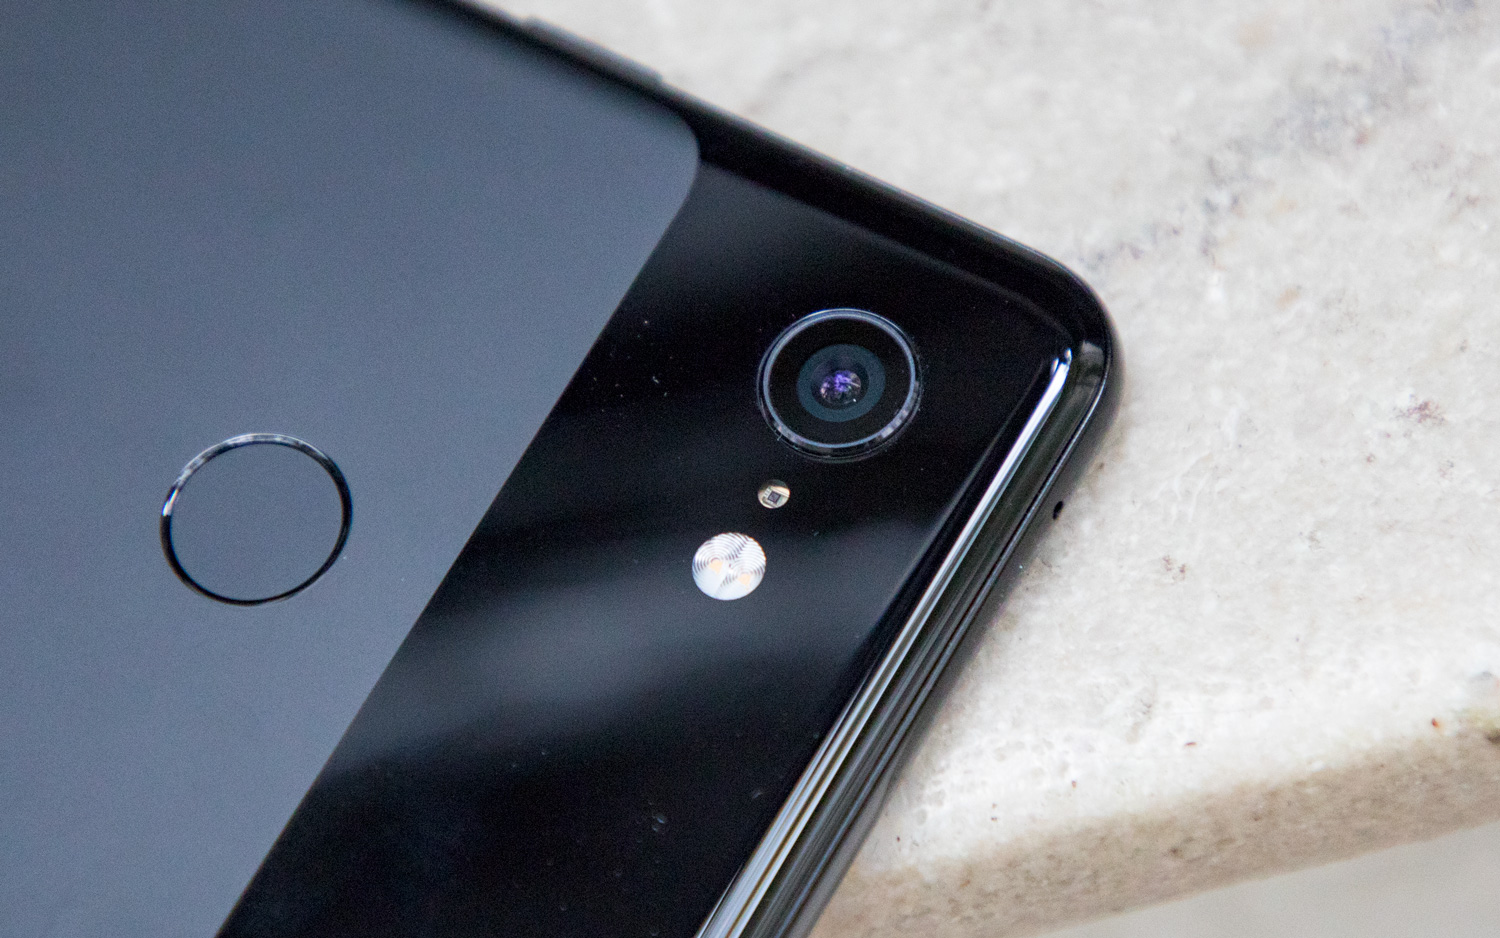 Google Shows Off 20x Zoom Photo, But It's NOT for the Pixel